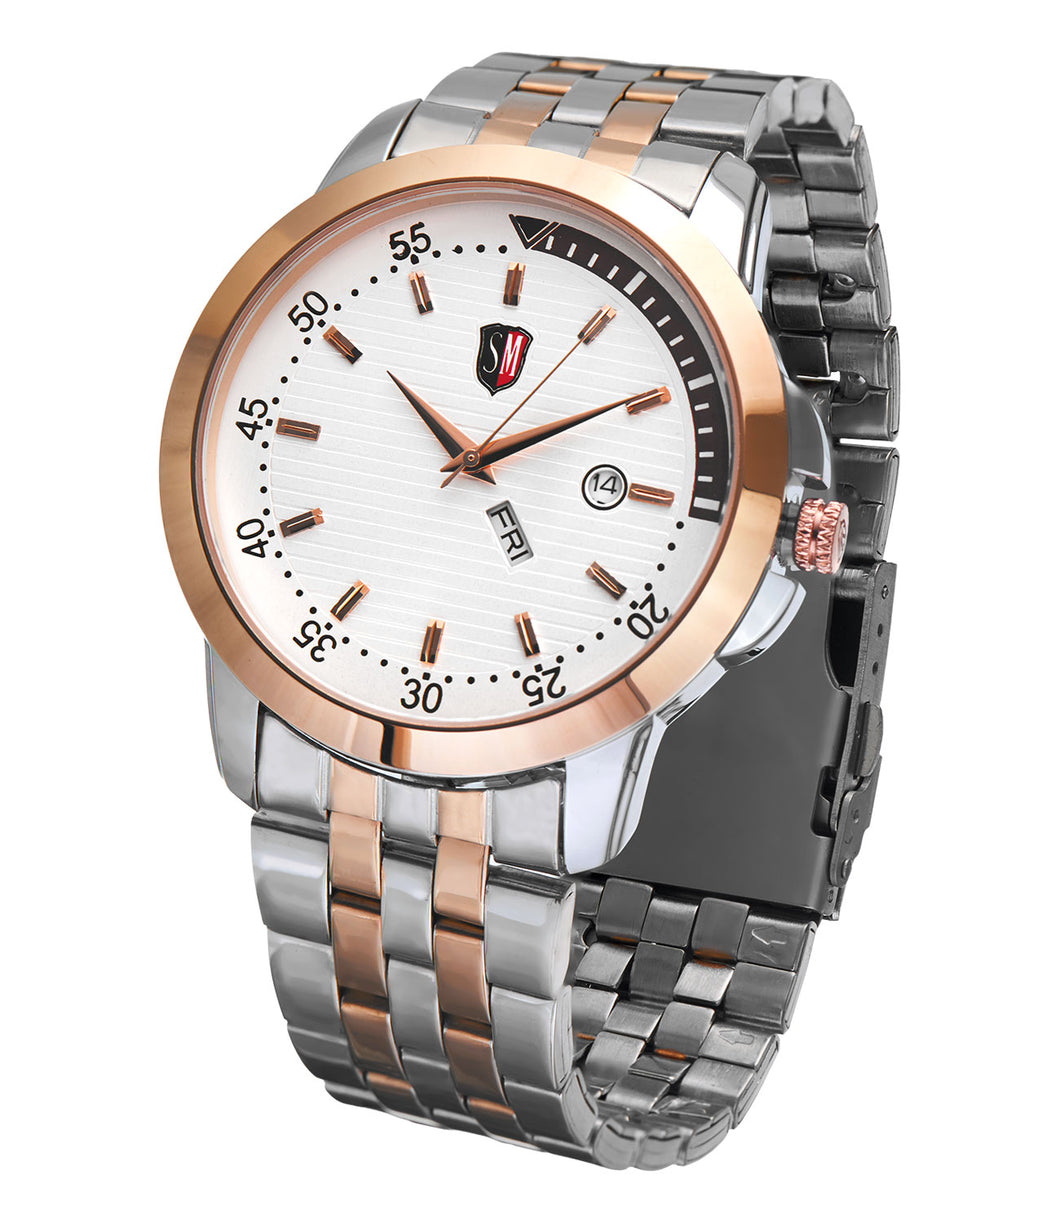 SM MEN'S DESIGNER (DAY & DATE) TWO TONE ROSE GOLD WATCH